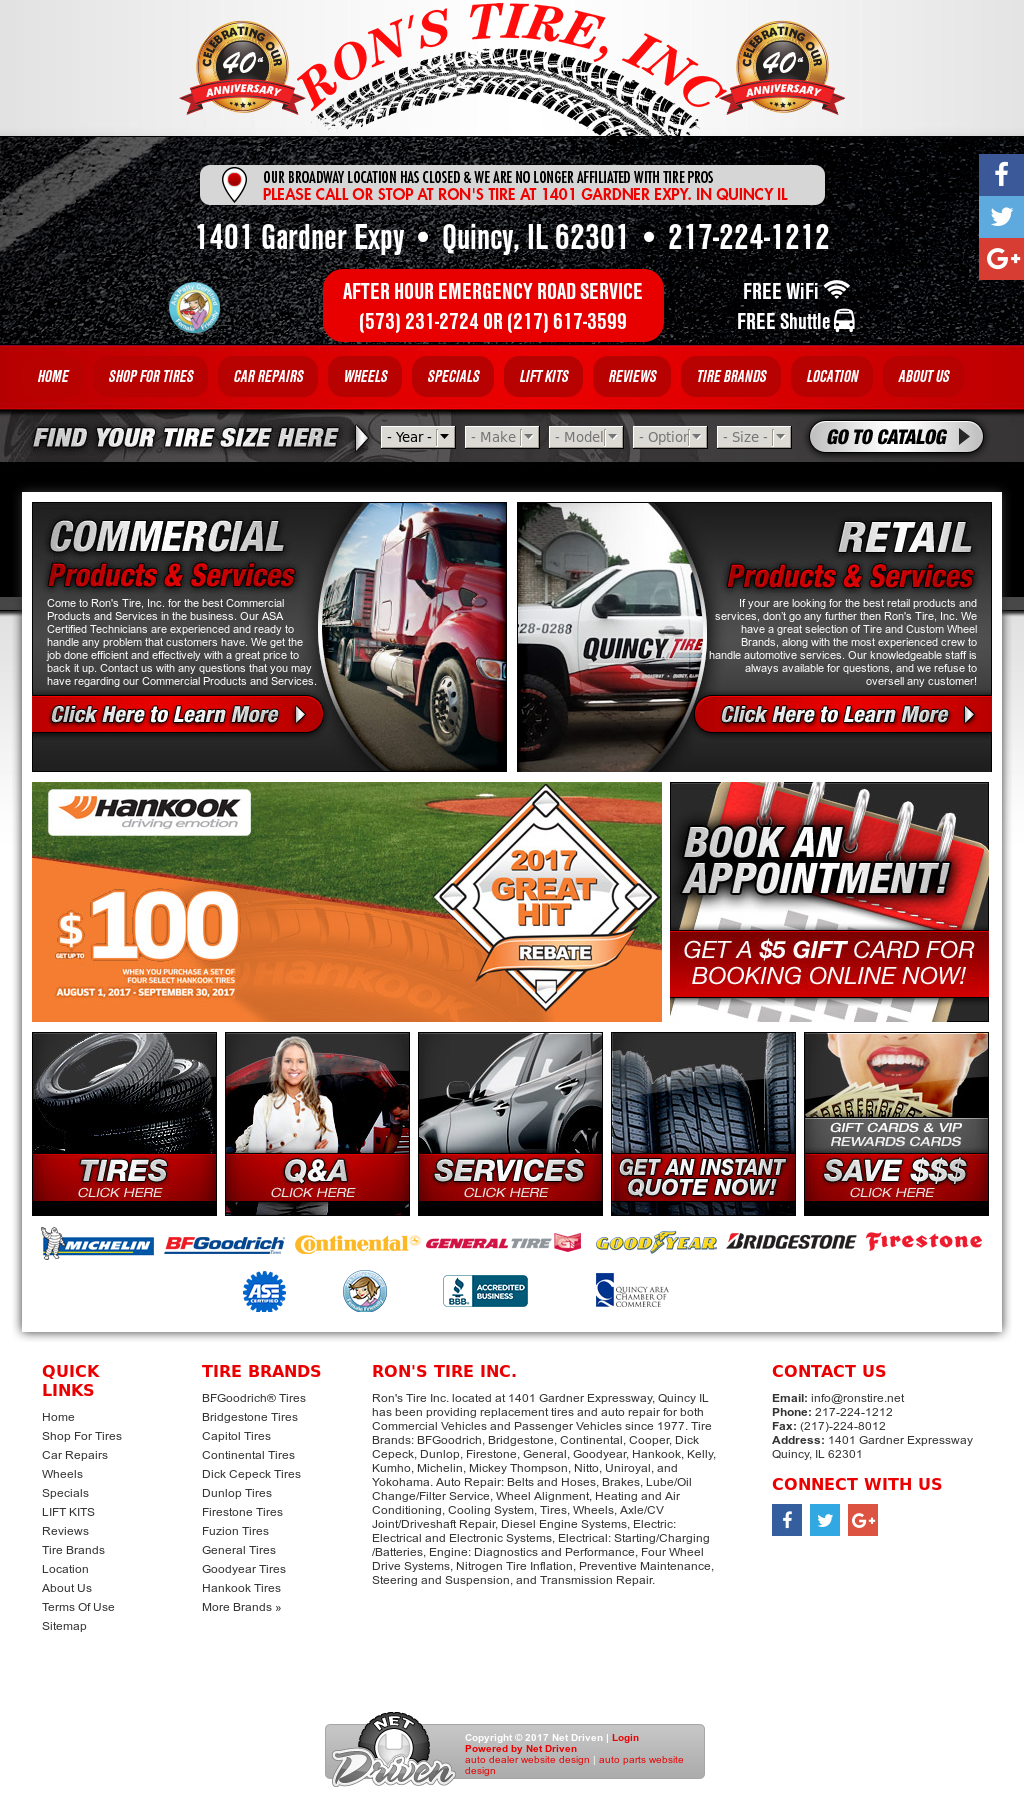 Ron S Tire Competitors Revenue And Employees Owler Company Profile